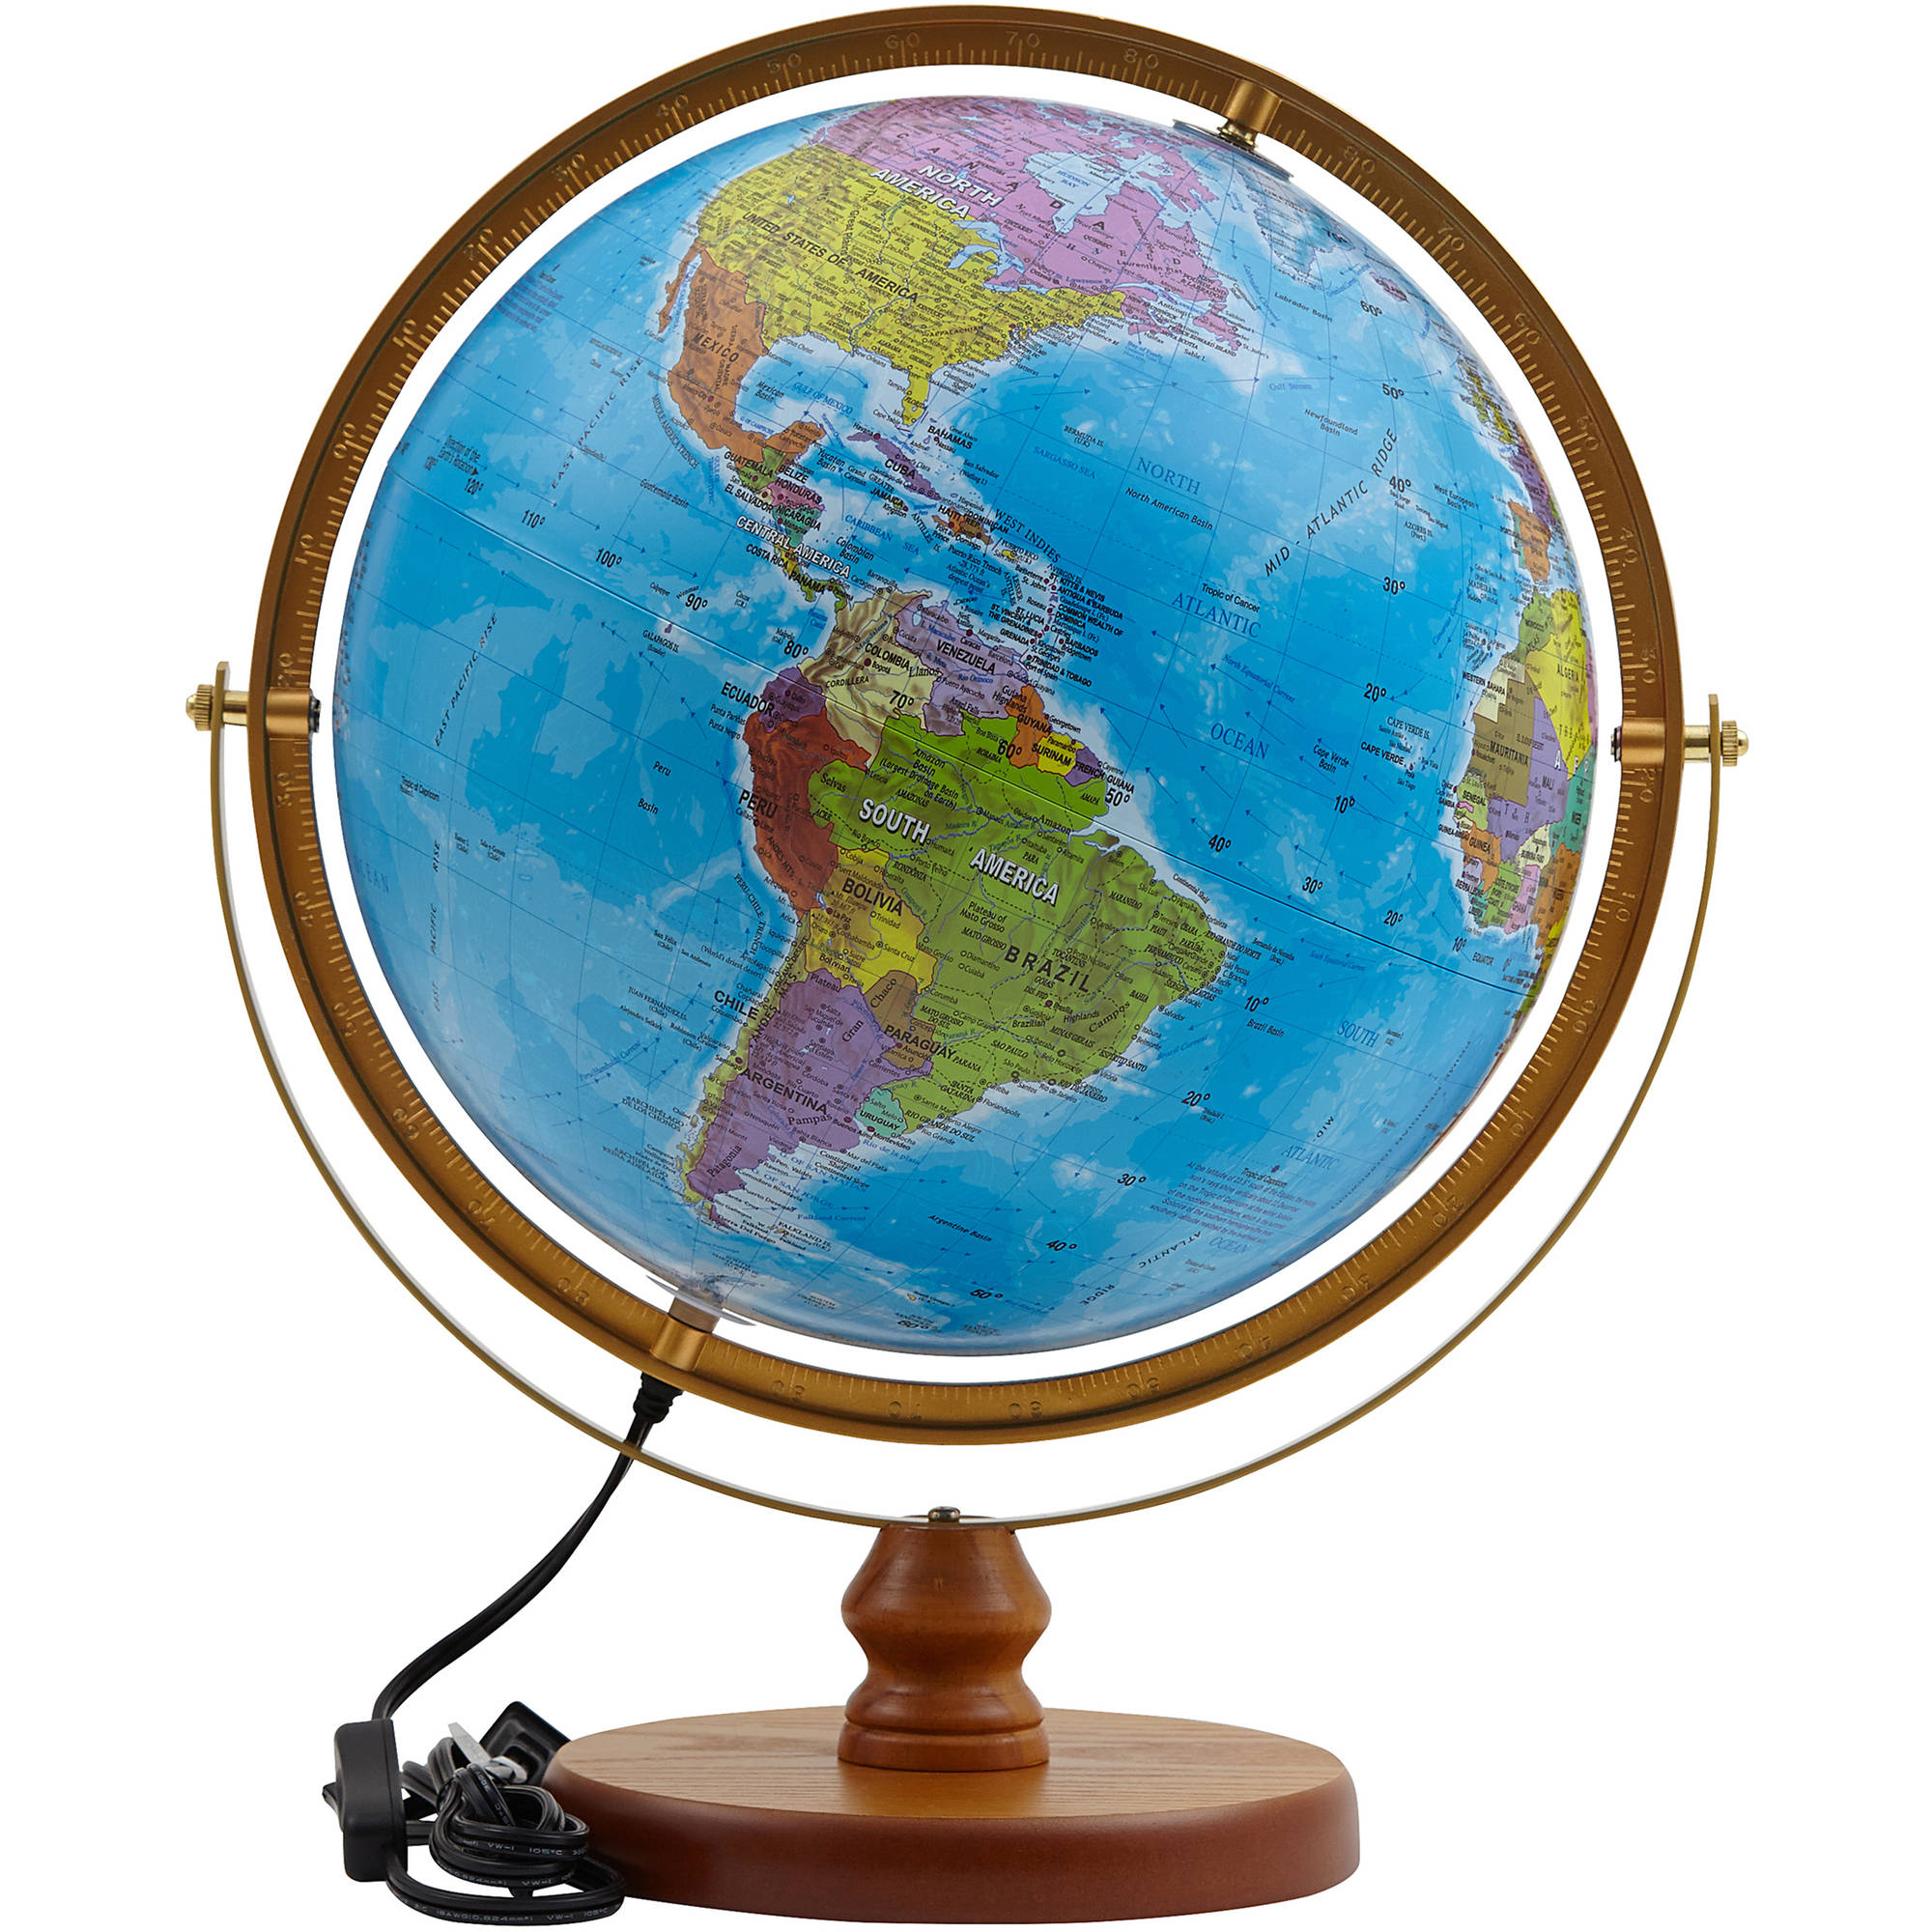 Mtroiz International 320-GASW SJ Smart Globe with Apps and LED Constellations